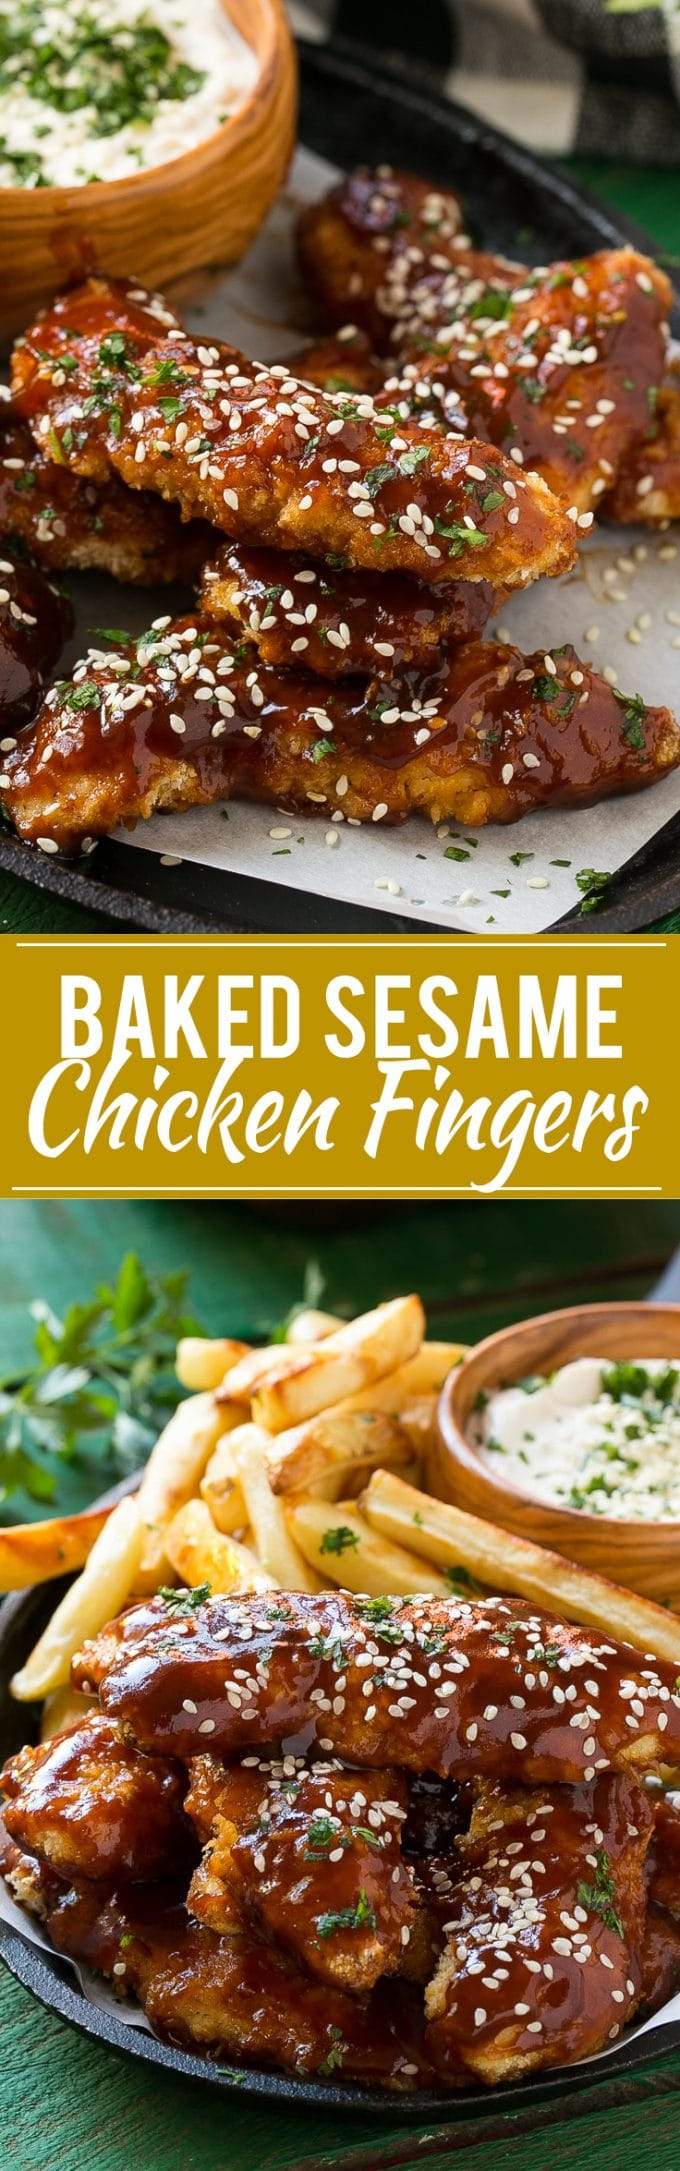 Sesame Chicken Fingers | Baked Chicken Fingers #chicken #dinner #dinneratthezo